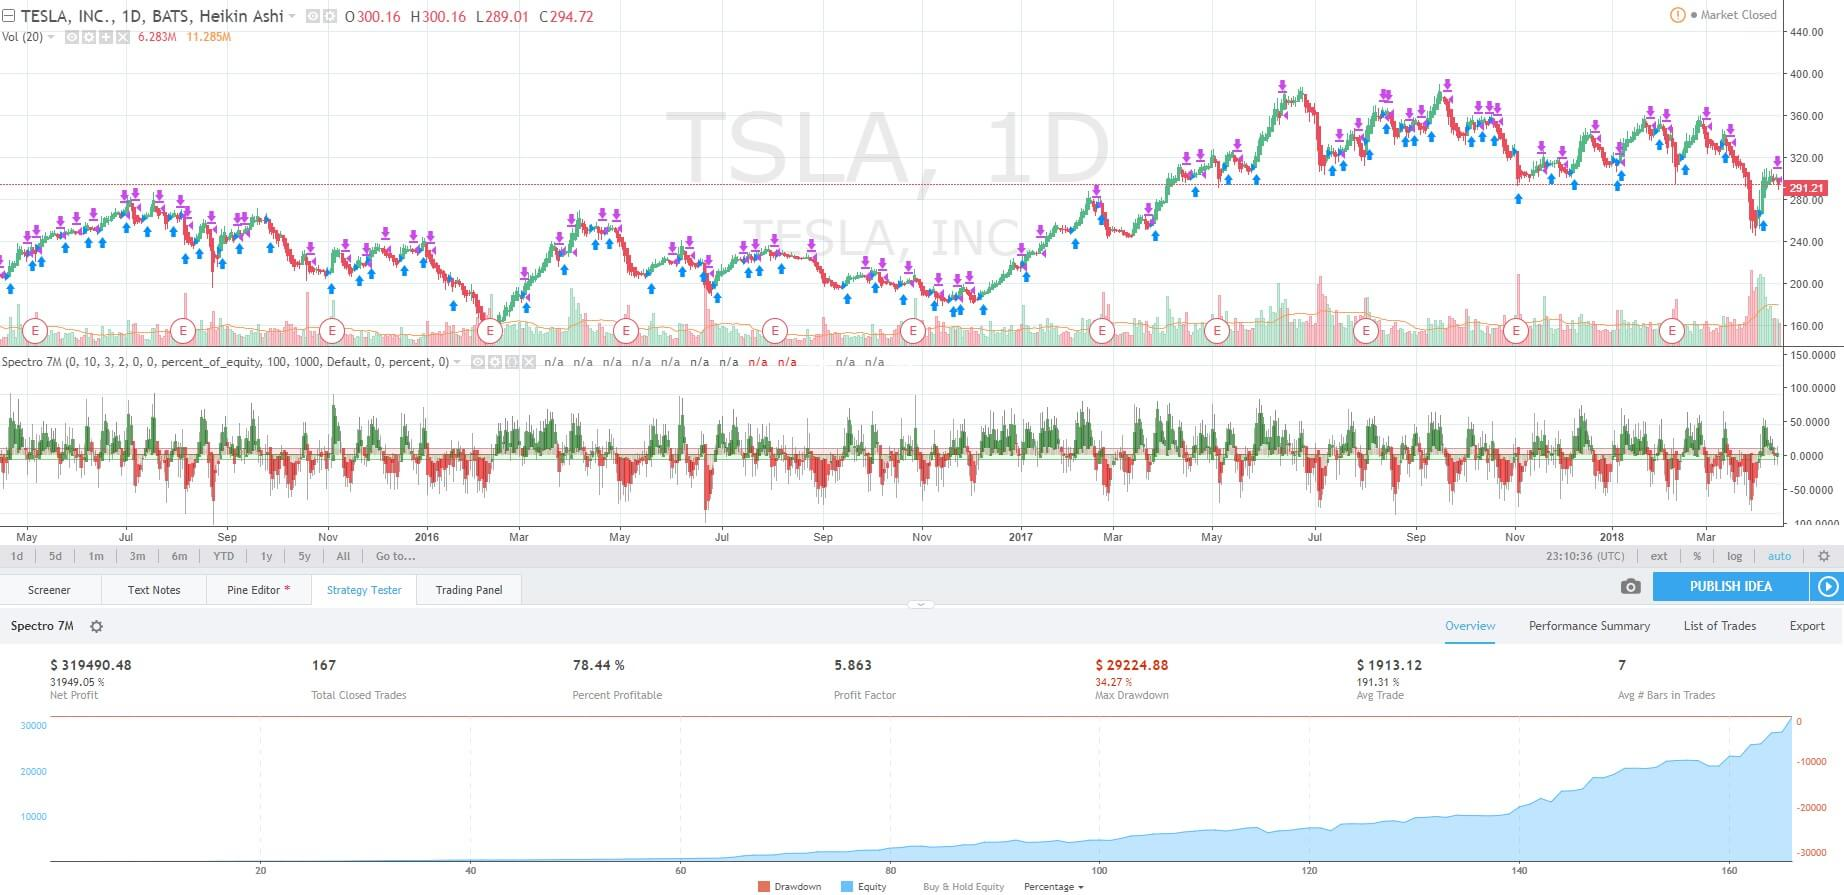 TSLA Backtesting